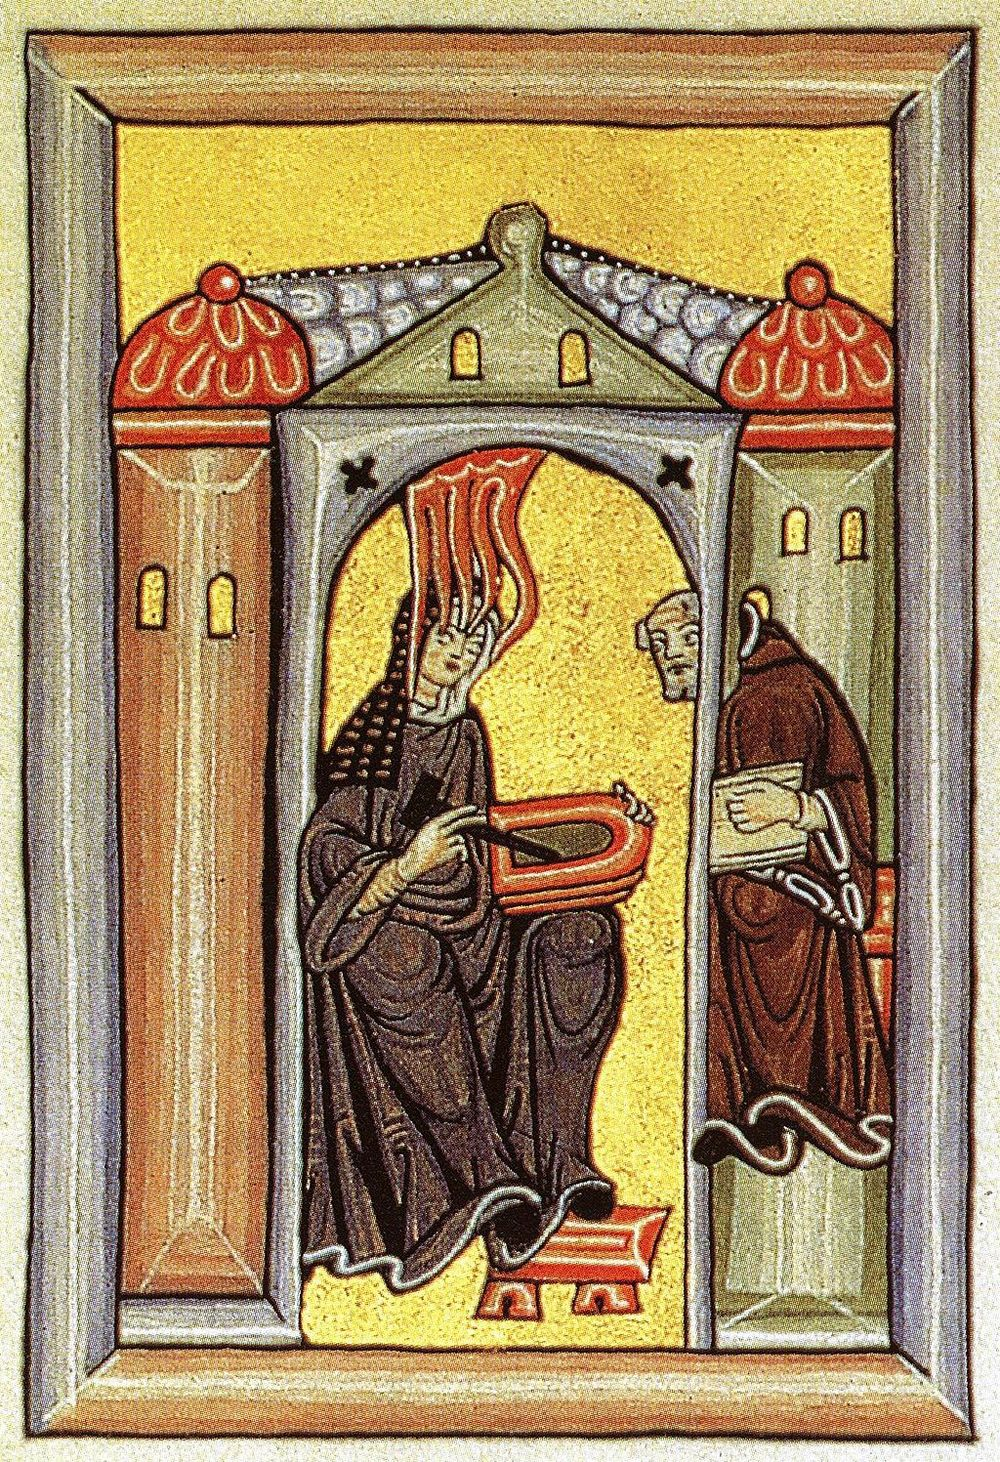 Hildegard of Bingen self portrait, Awakening, from her first book Scivias, 1151